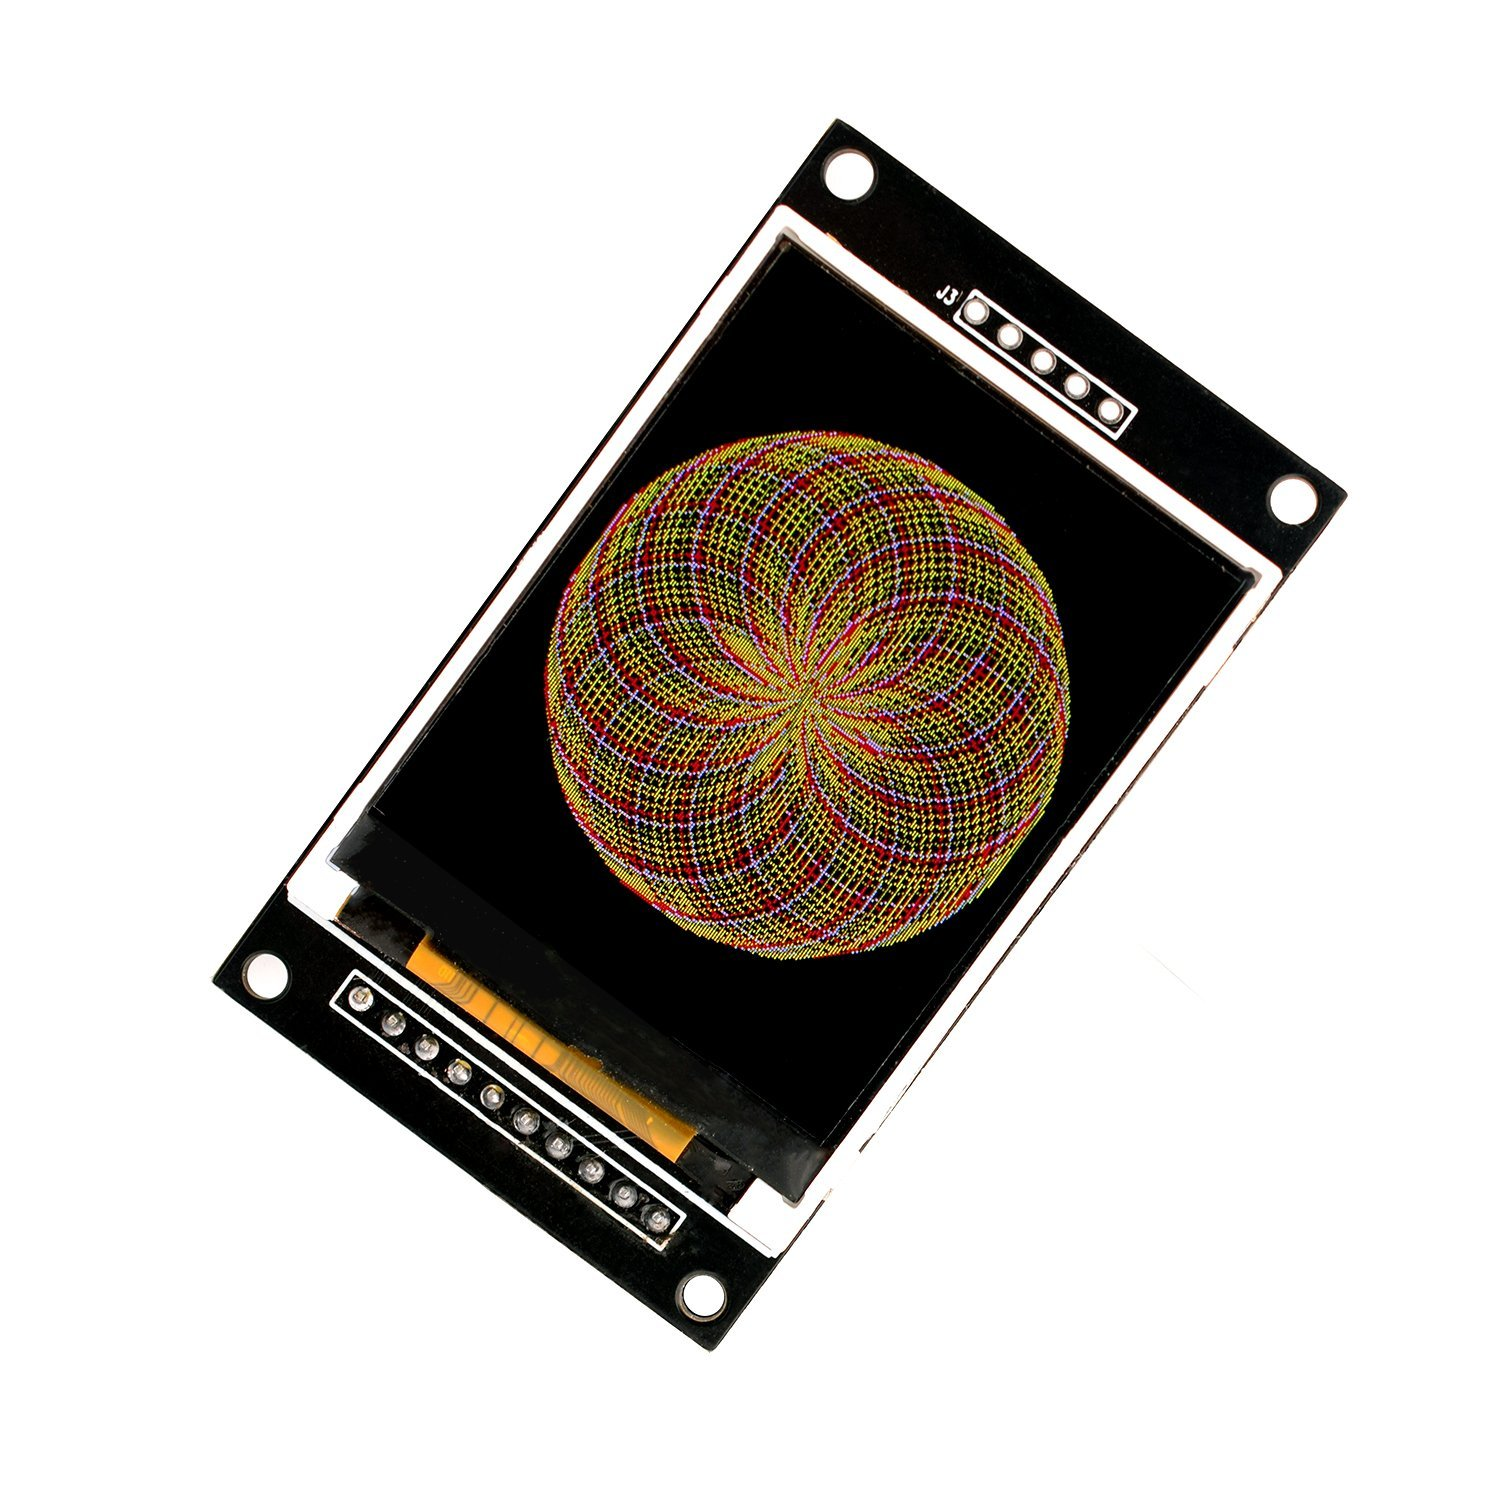 MICROYUM 2 0 inch SPI TFT Screen LCD Display Module with SD Card